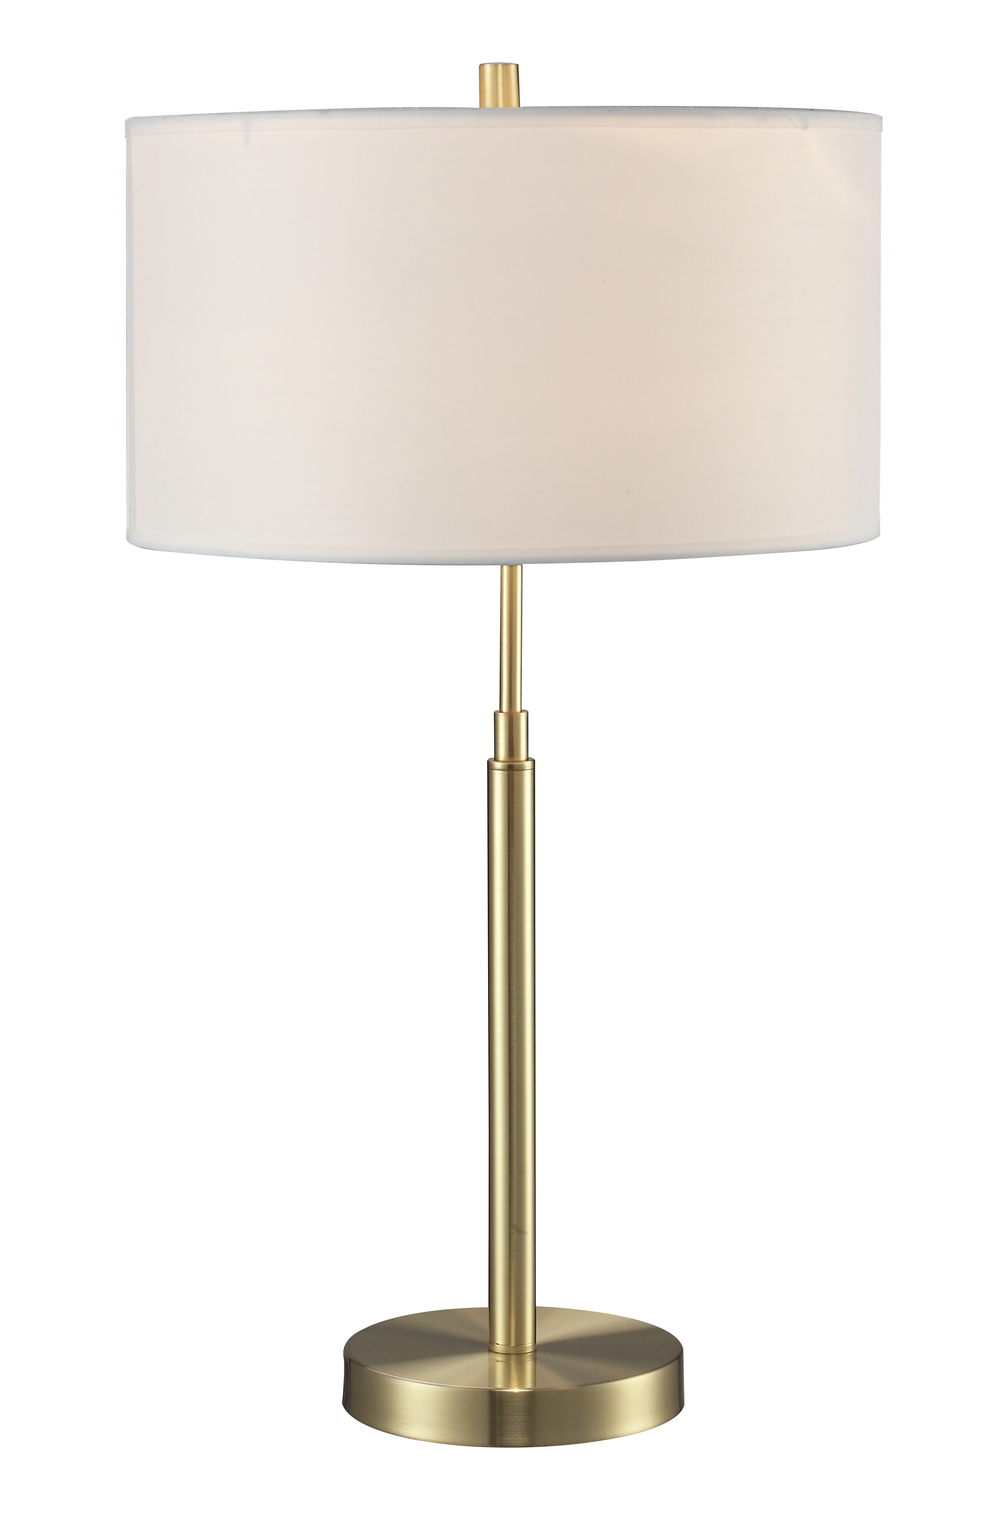 10018 | EMPIRE TABLE LAMP